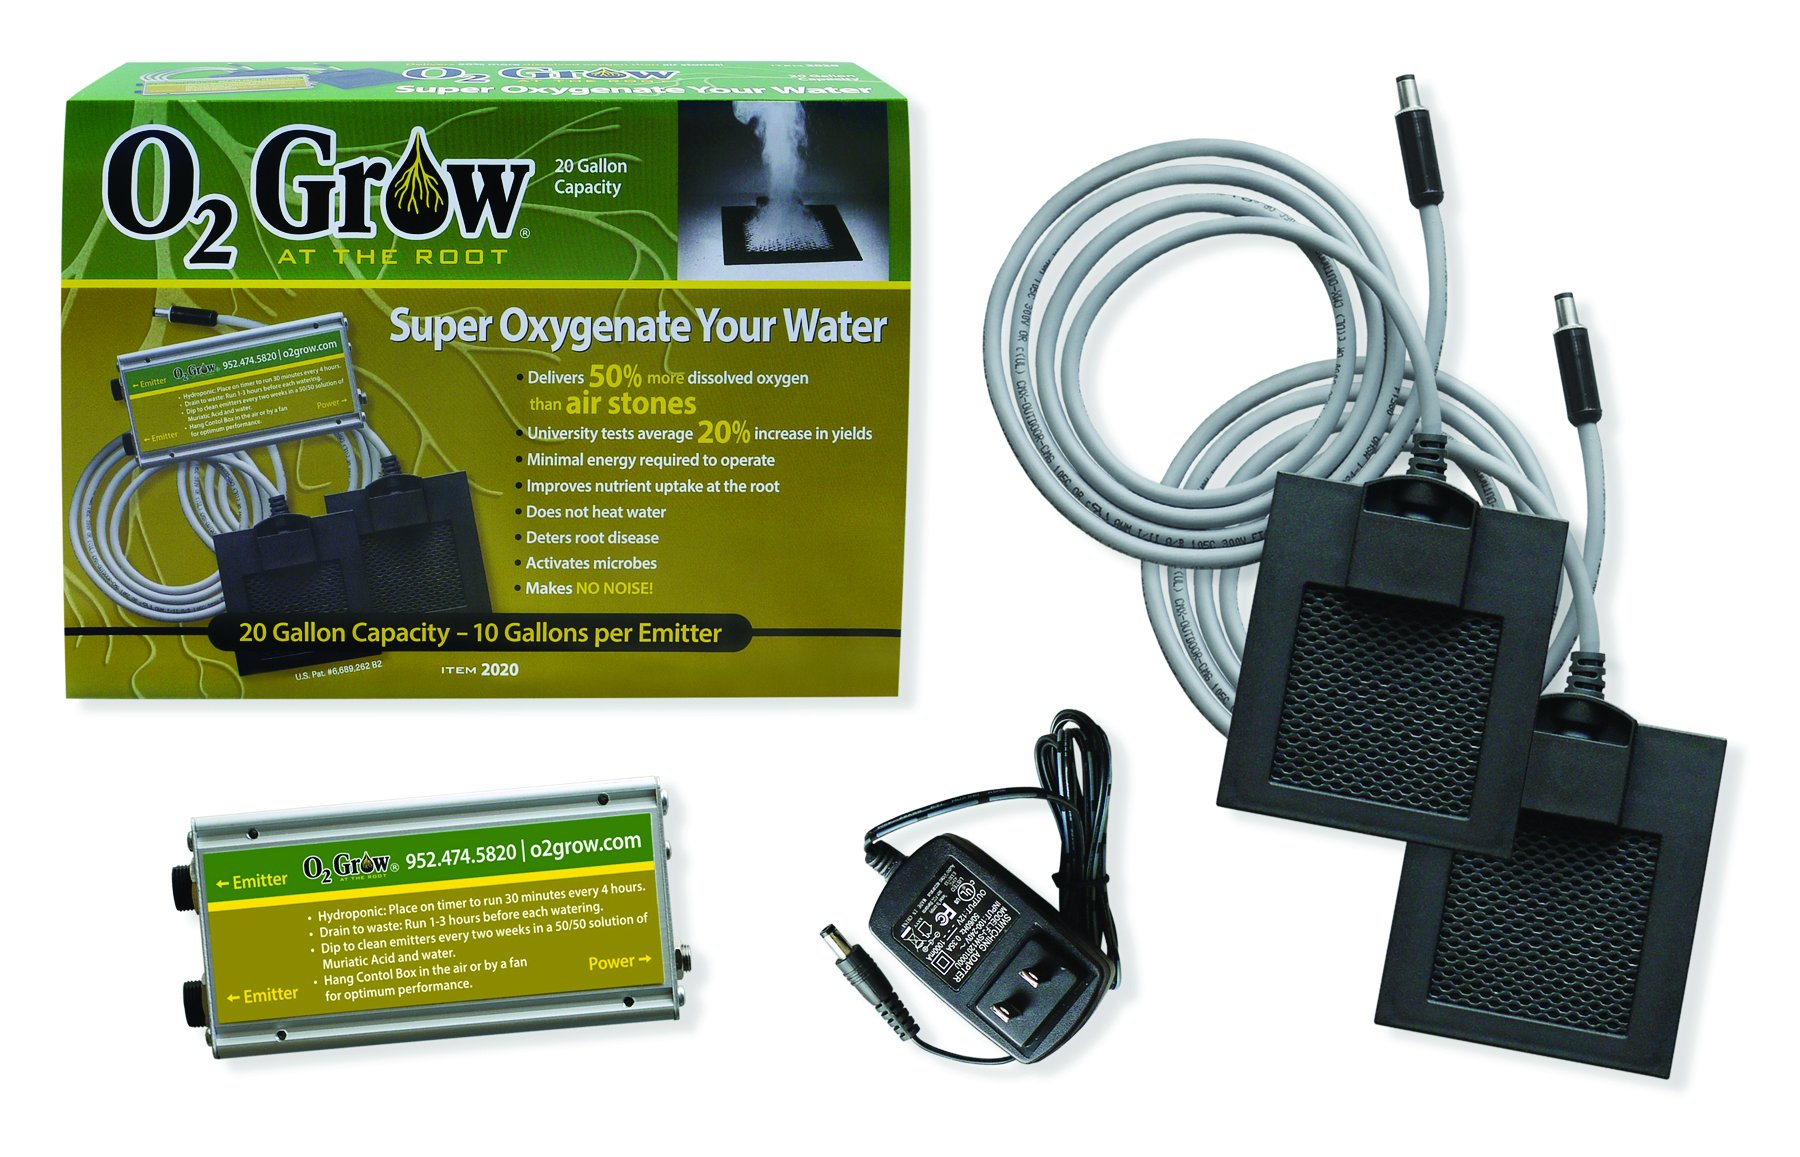 O2 Grow Dissolved Oxygen Emitter 2020 - 20 Gallons by O2 Grow